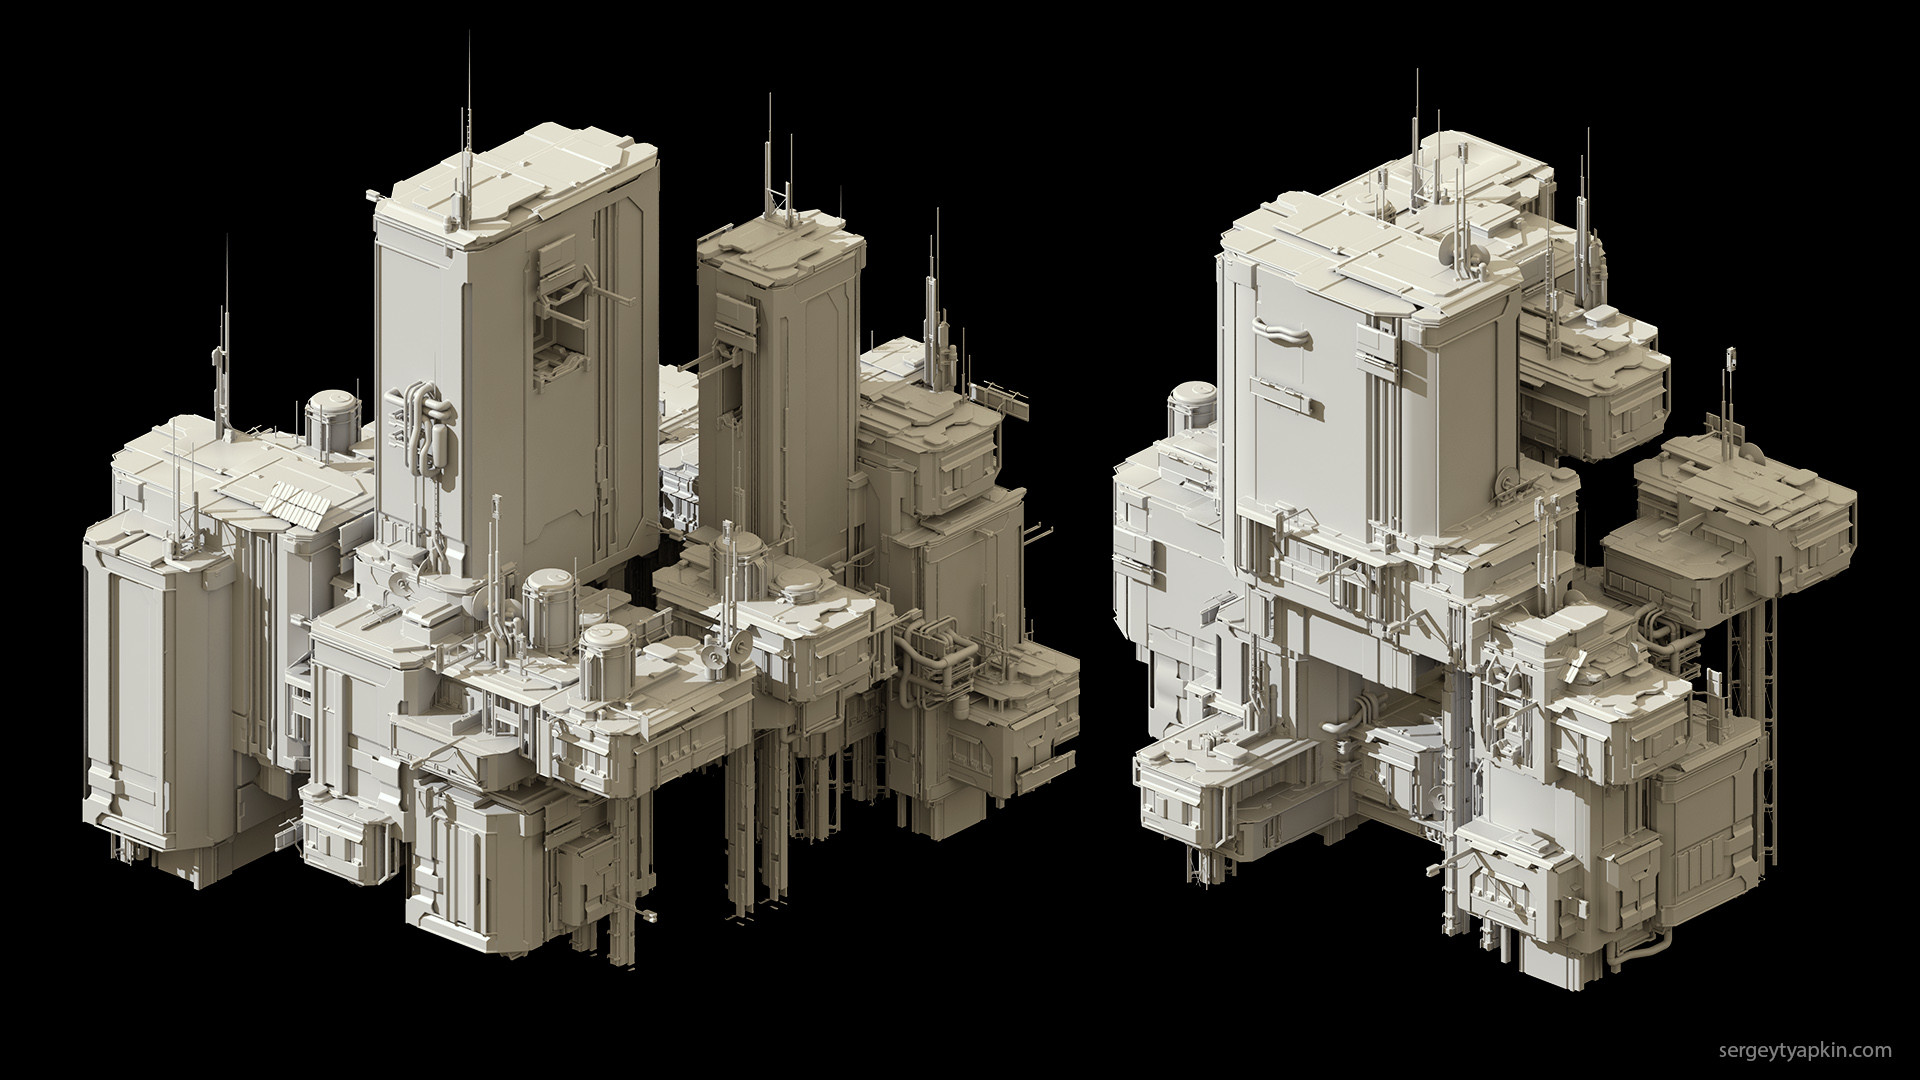 ArtStation - Gumroad - How to create Procedural Building Generator